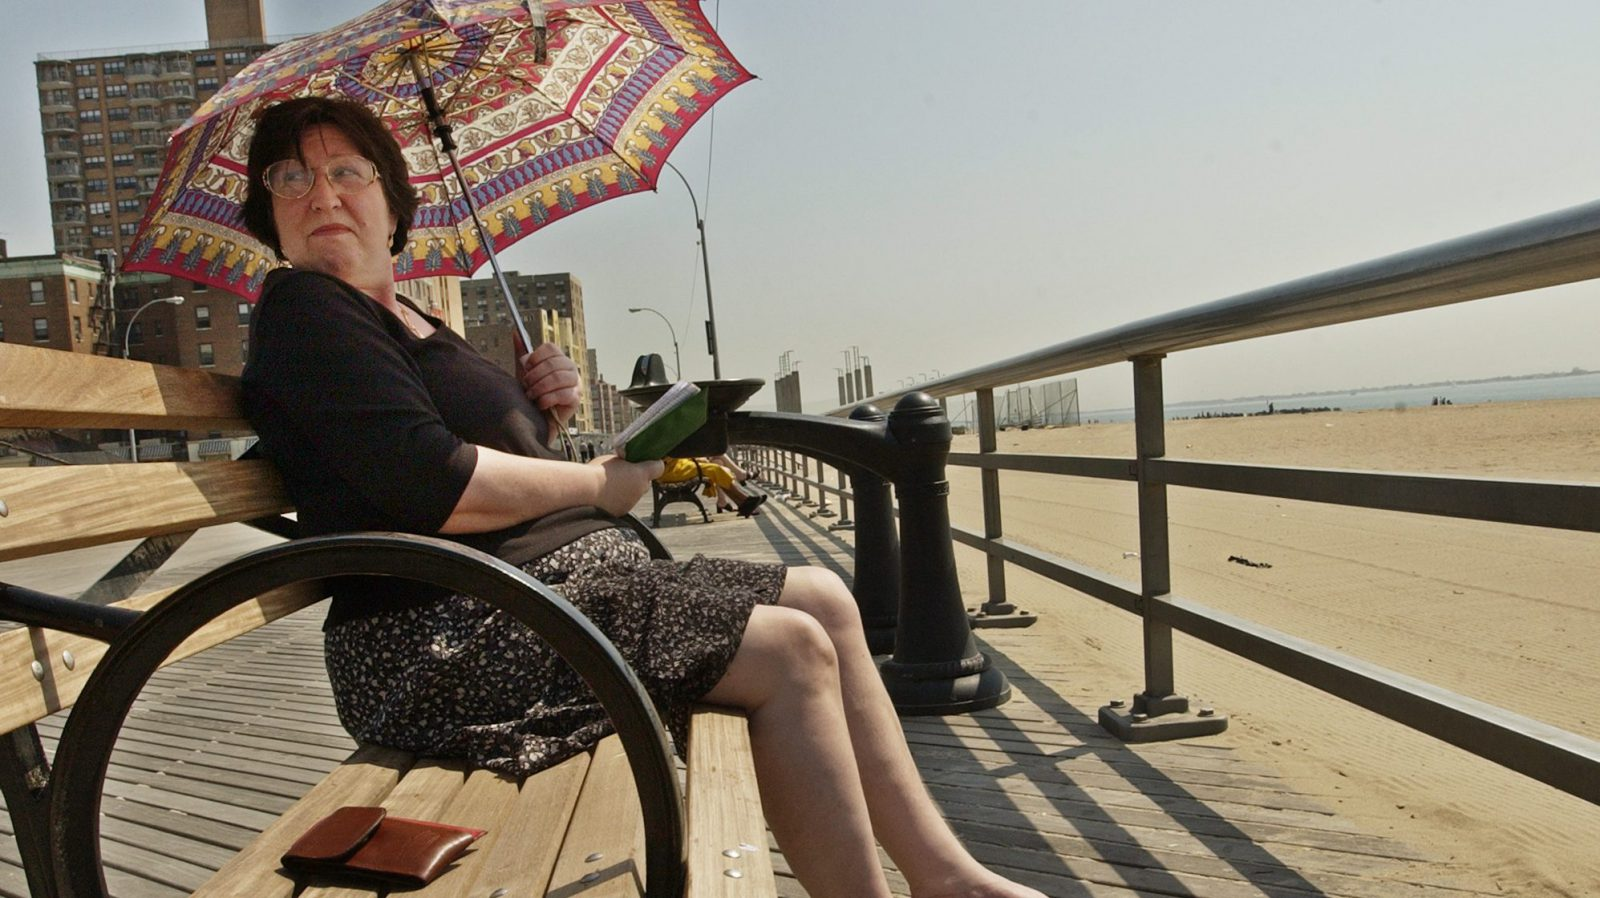 Russian immigrant, who only identified herself as, Zenaida, uses an umbrella to shield herself from the midday sun as she studies her English on the boardwalk at Coney Island, Tuesday, April 16, 2002, in New York. Record high temperatures blanketed the metropolitan New York area Tuesday. (AP Photo/Kathy Willens)